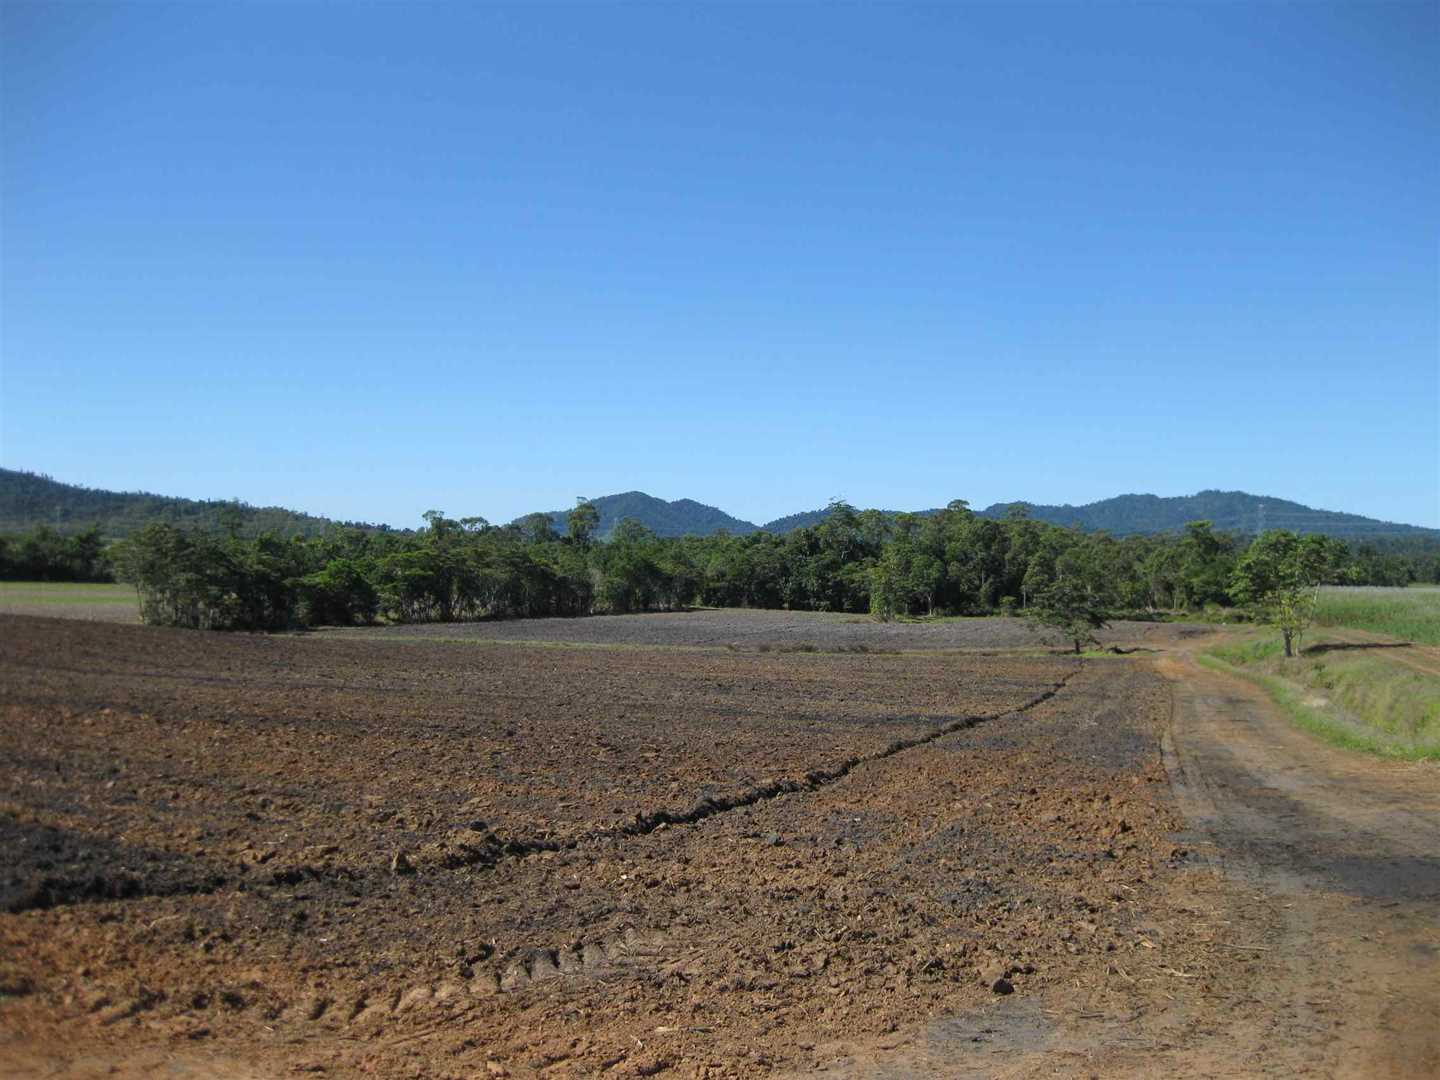 Lot 1, view of part of property when part fallow (now under cane), photo 2